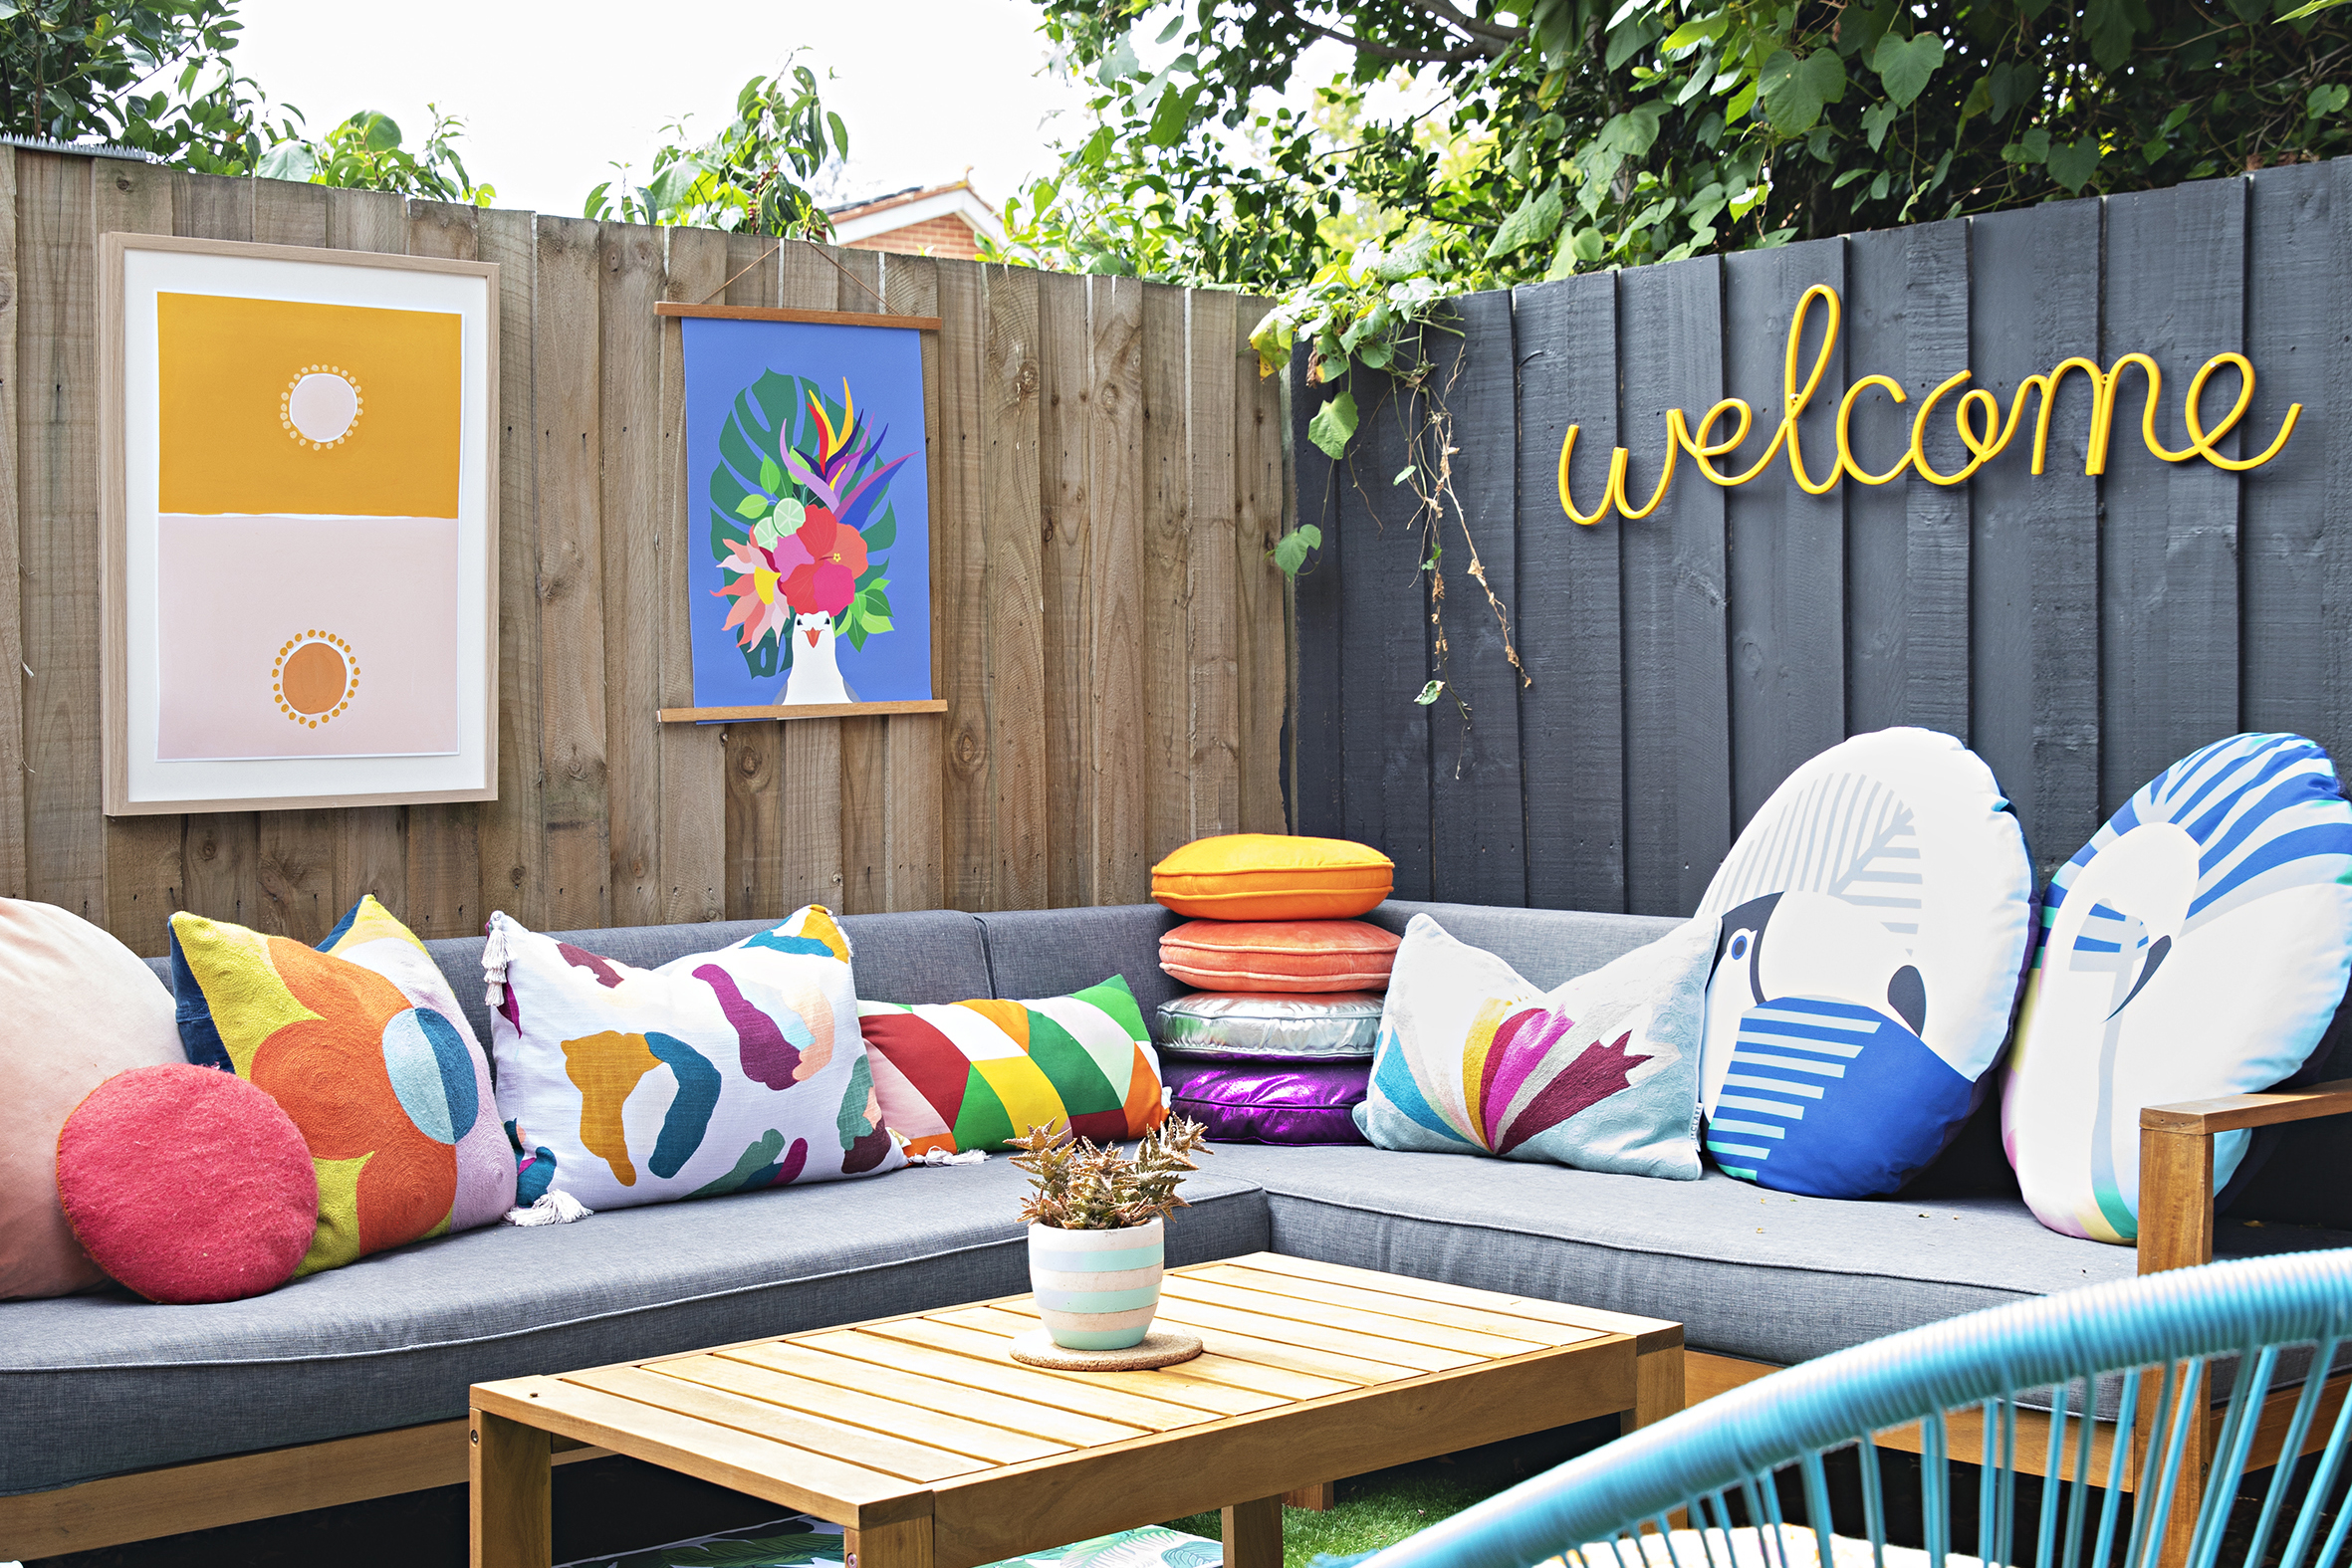 Outdoor Furniture Apartment Therapy within size 2362 X 1575